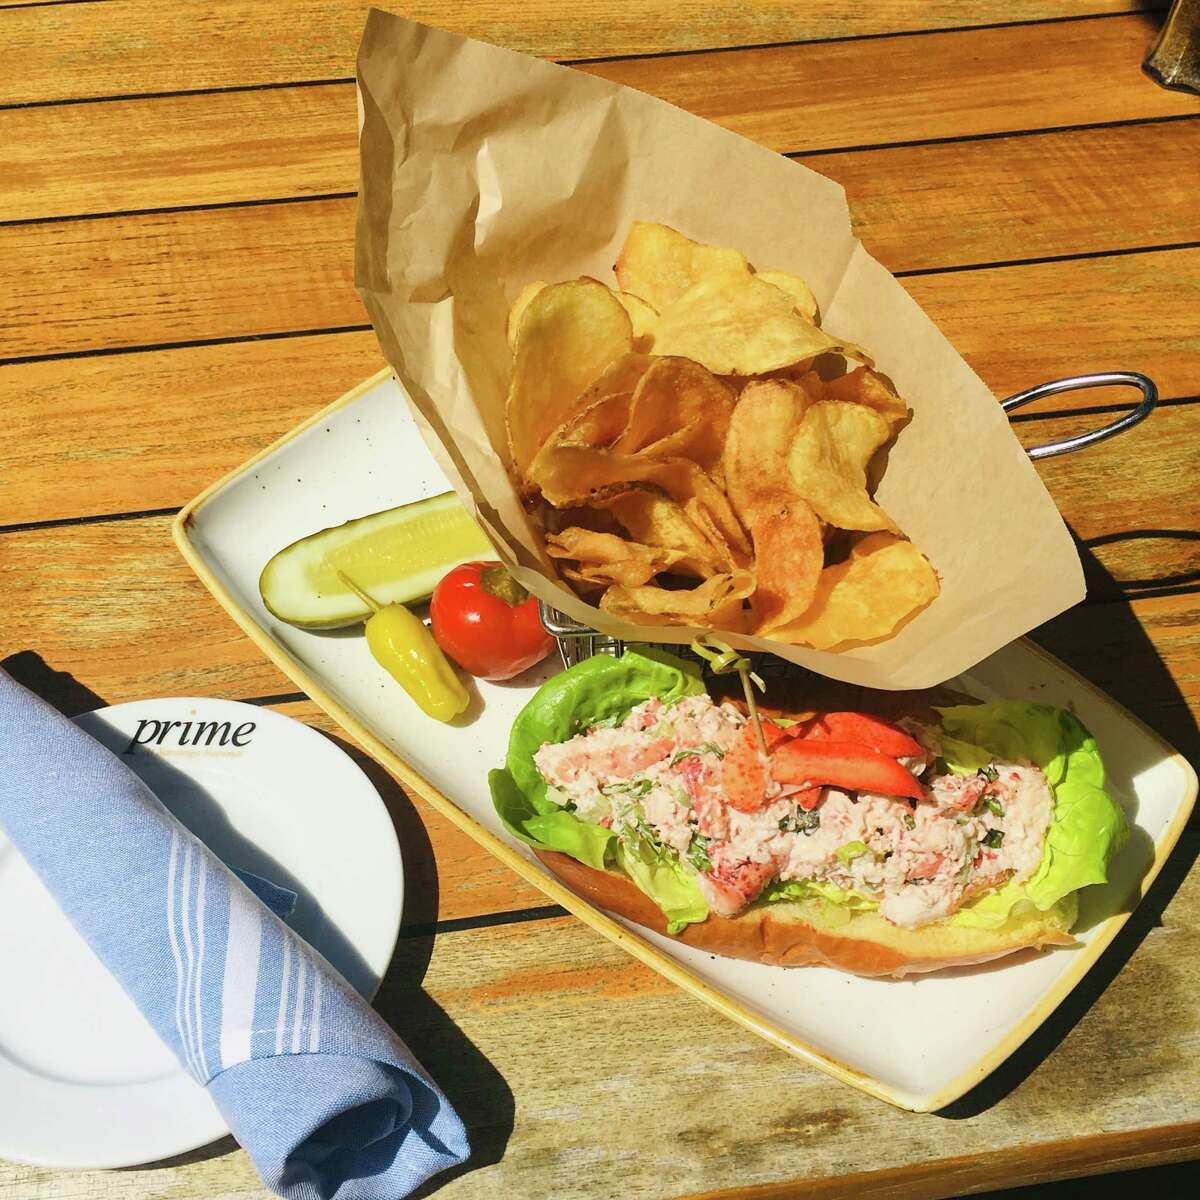 The lobster roll from Prime at the Saratoga National Golf Club. (Provided, Saratoga National)